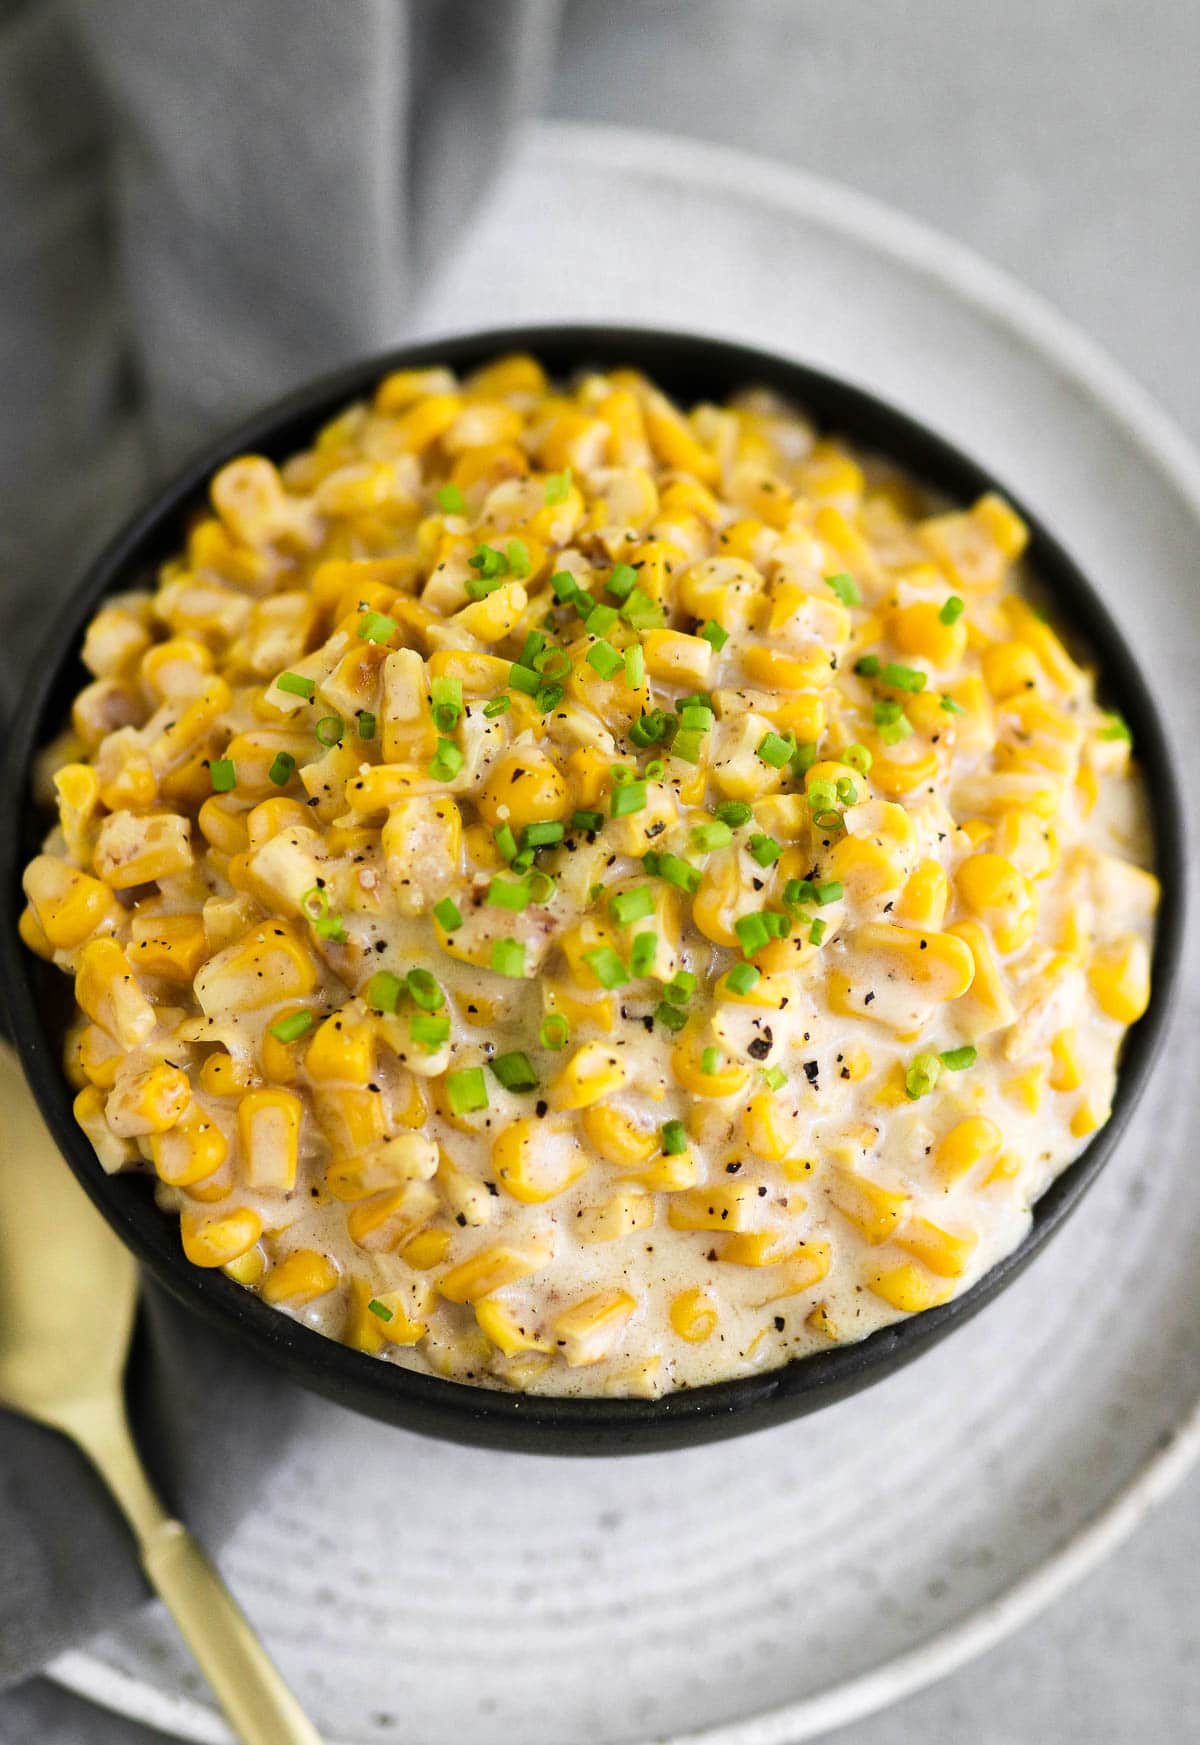 photo of creamed corn in a black bowl with chives on top